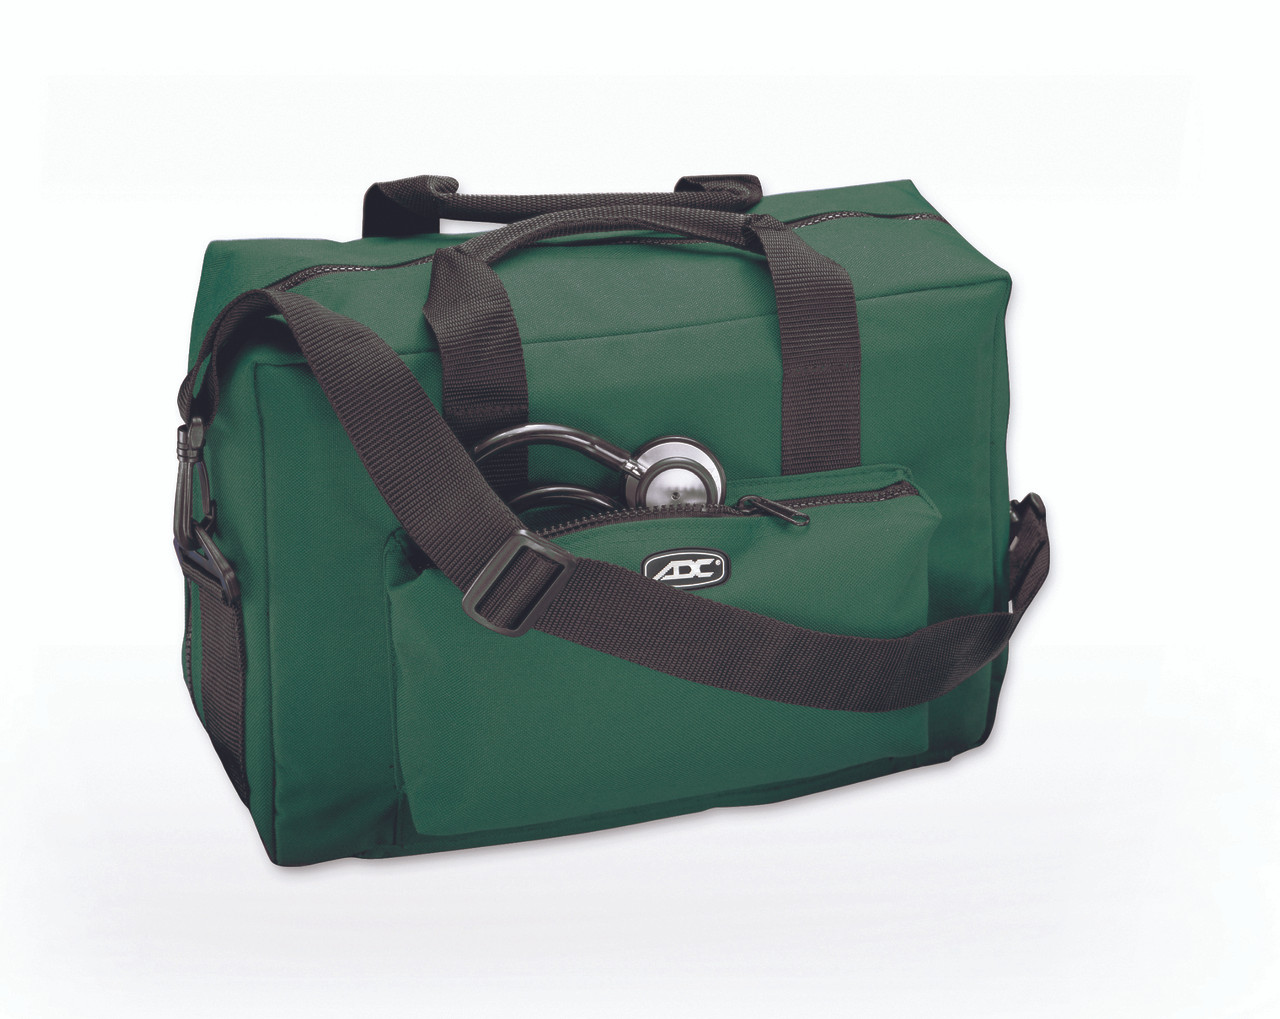 ADC Nylon Medical Bag, Dark Green